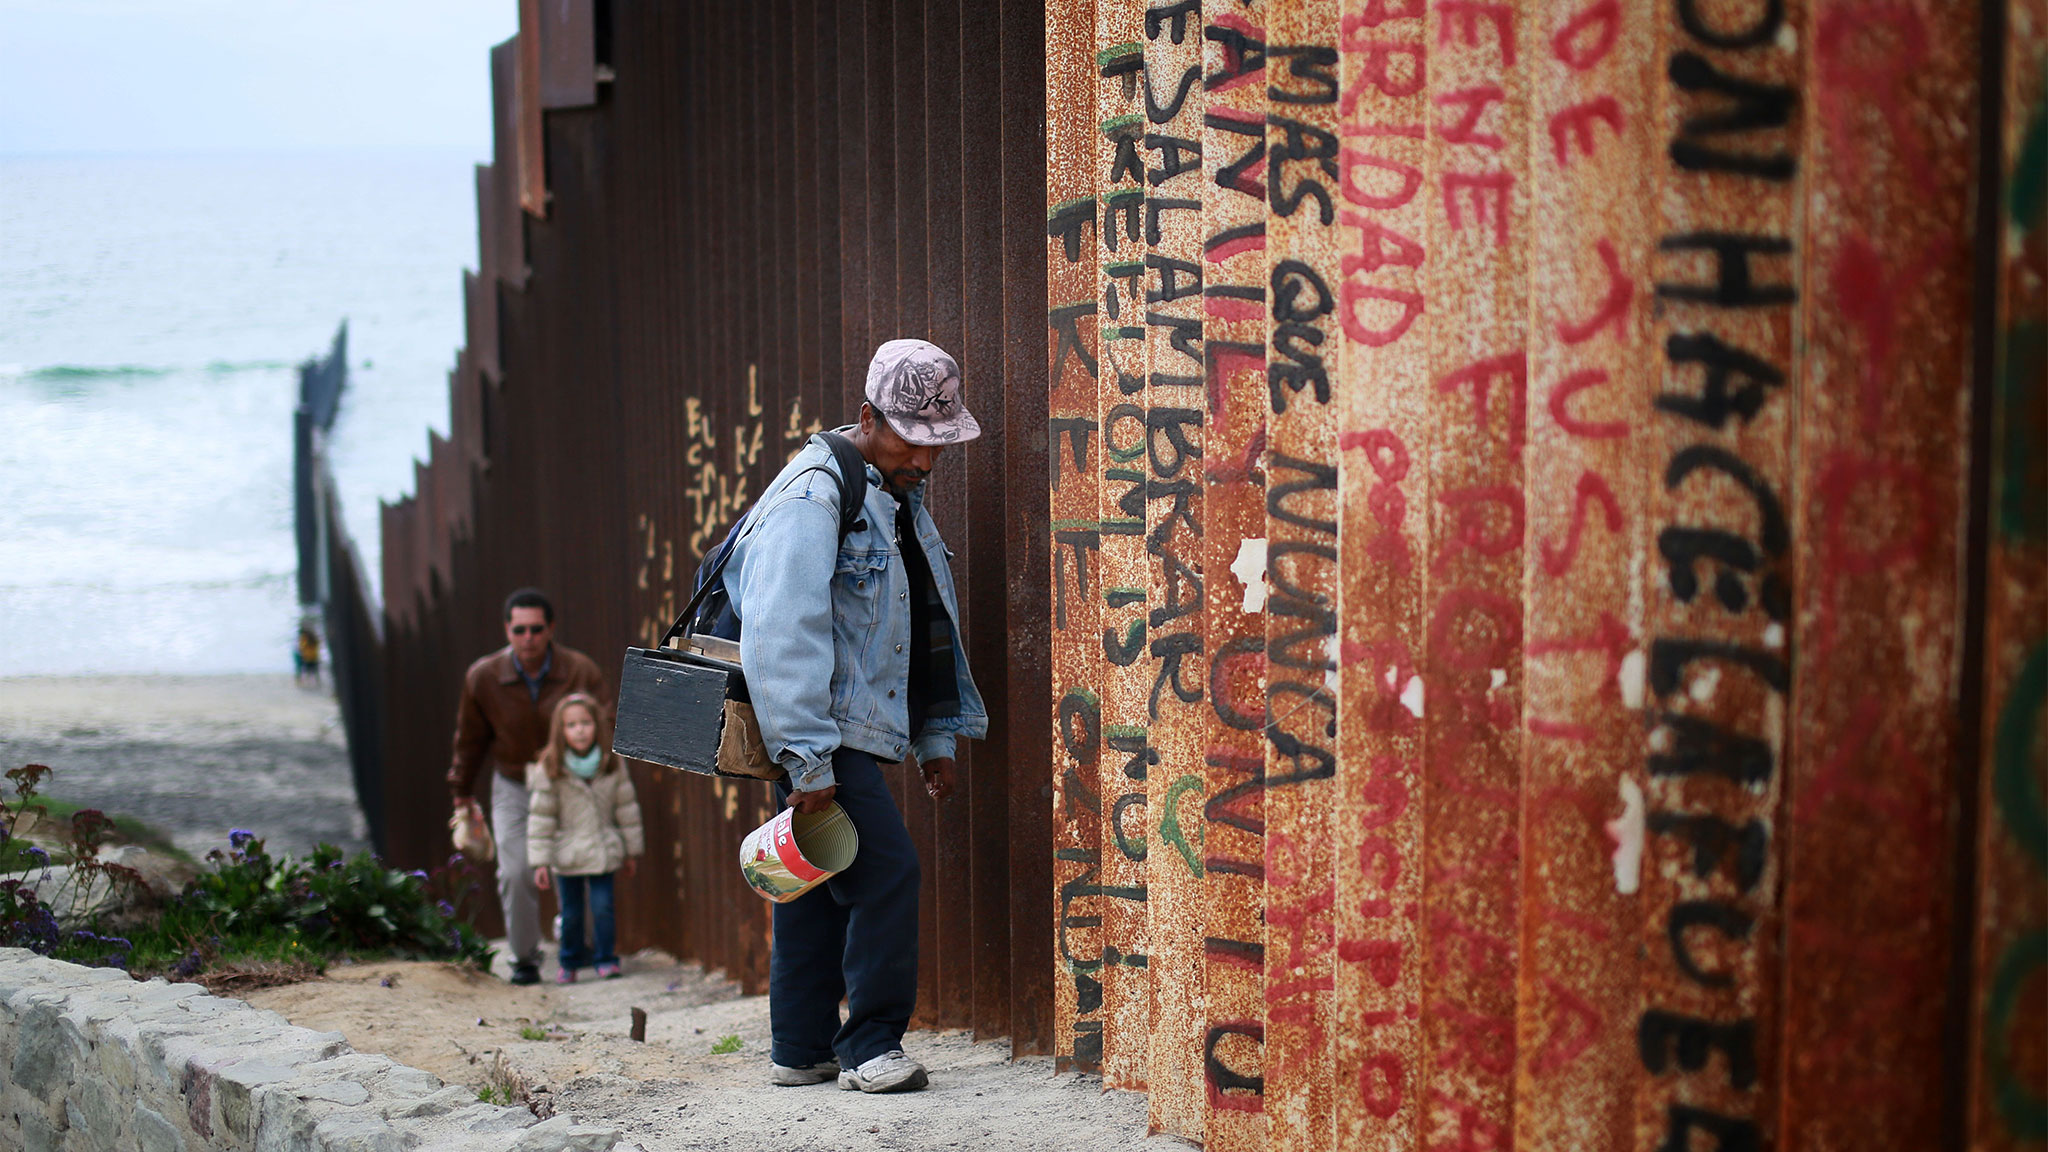 the border fence consequences essay Here are all the problems with donald trump's plan to build a massive wall along the us-mexico border the backyard of a home facing the border fence at the us-mexico border outside brownsville he must also contend with the cost and the diplomatic consequences.